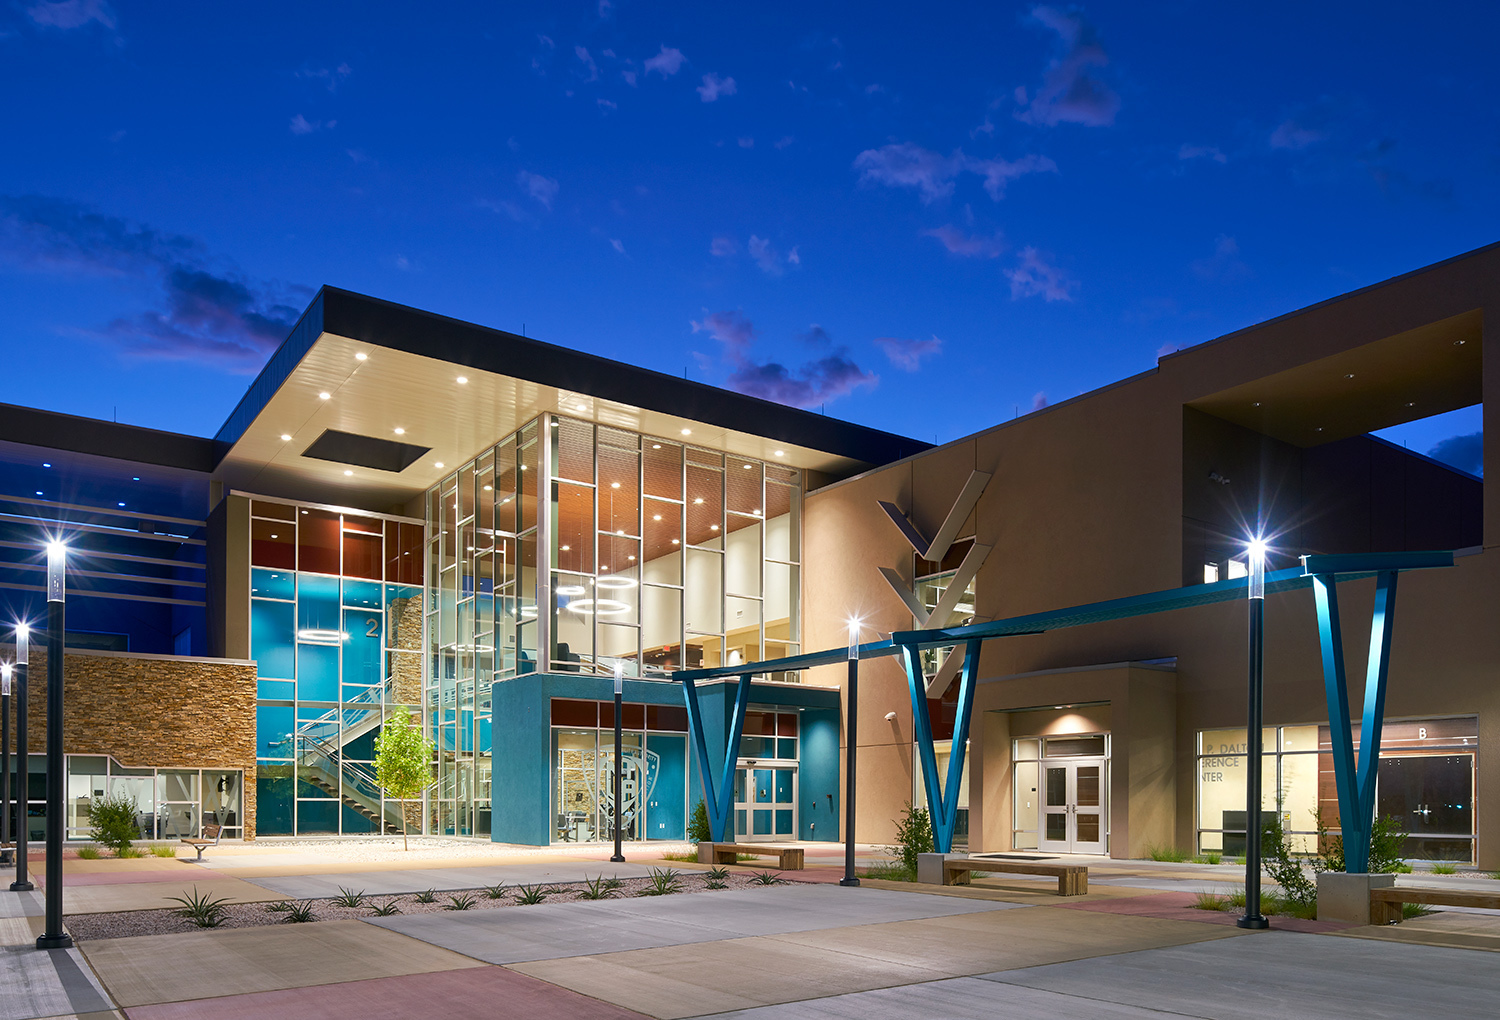 The Navajo Tribal Utility Authority Headquarters in Fort Defiance, Arizona, features a stunning curtain wall design that allows light to fill the interior of the space.